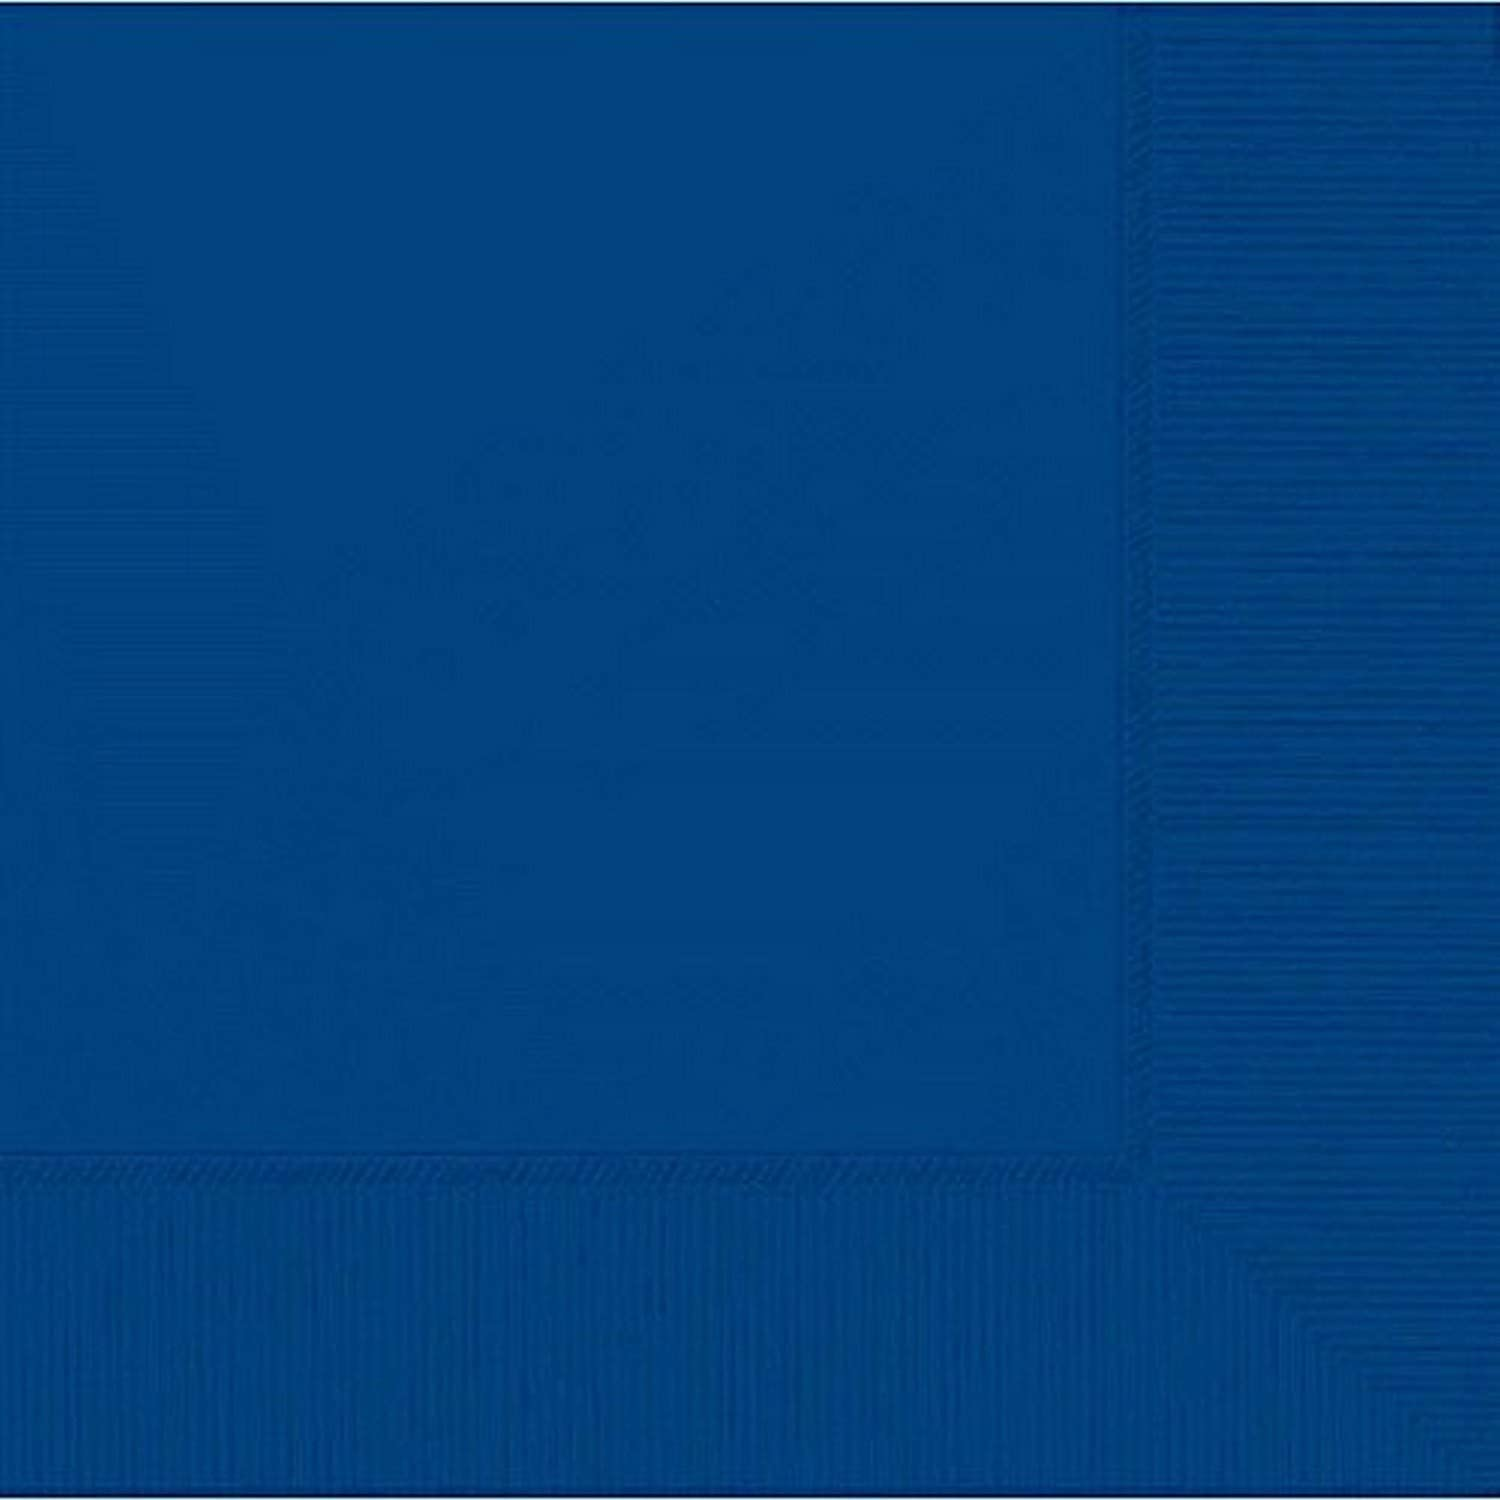 Amscan Bright Royal Blue 2-Ply Paper Beverage Napkins, 50 Ct. | Party Tableware